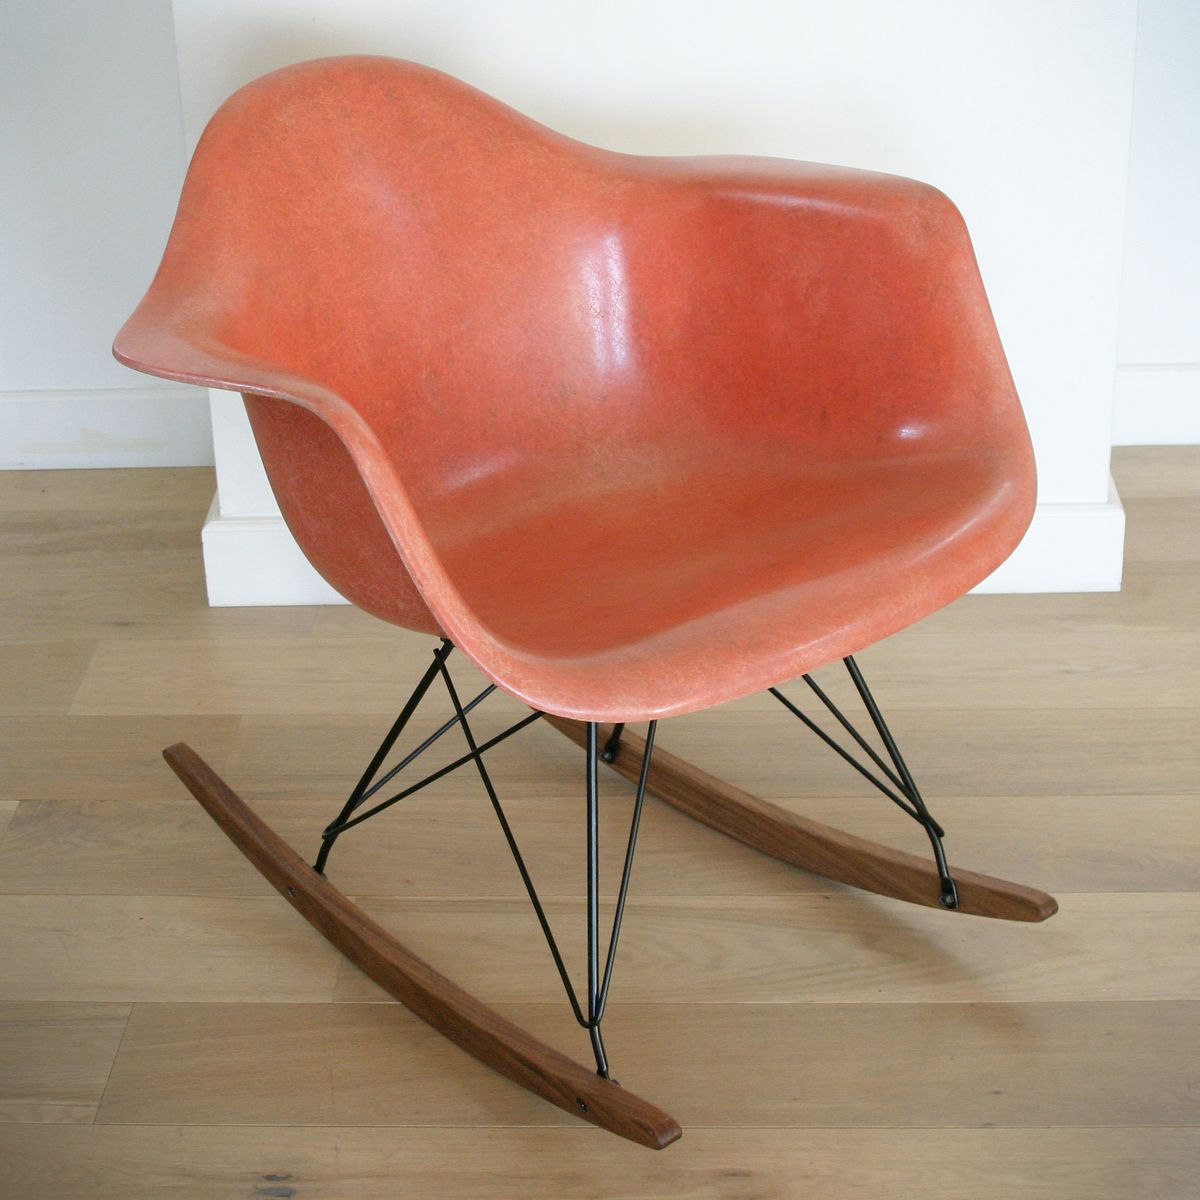 Rar rocking chair by eames for herman miller for sale at for Schaukelstuhl sale